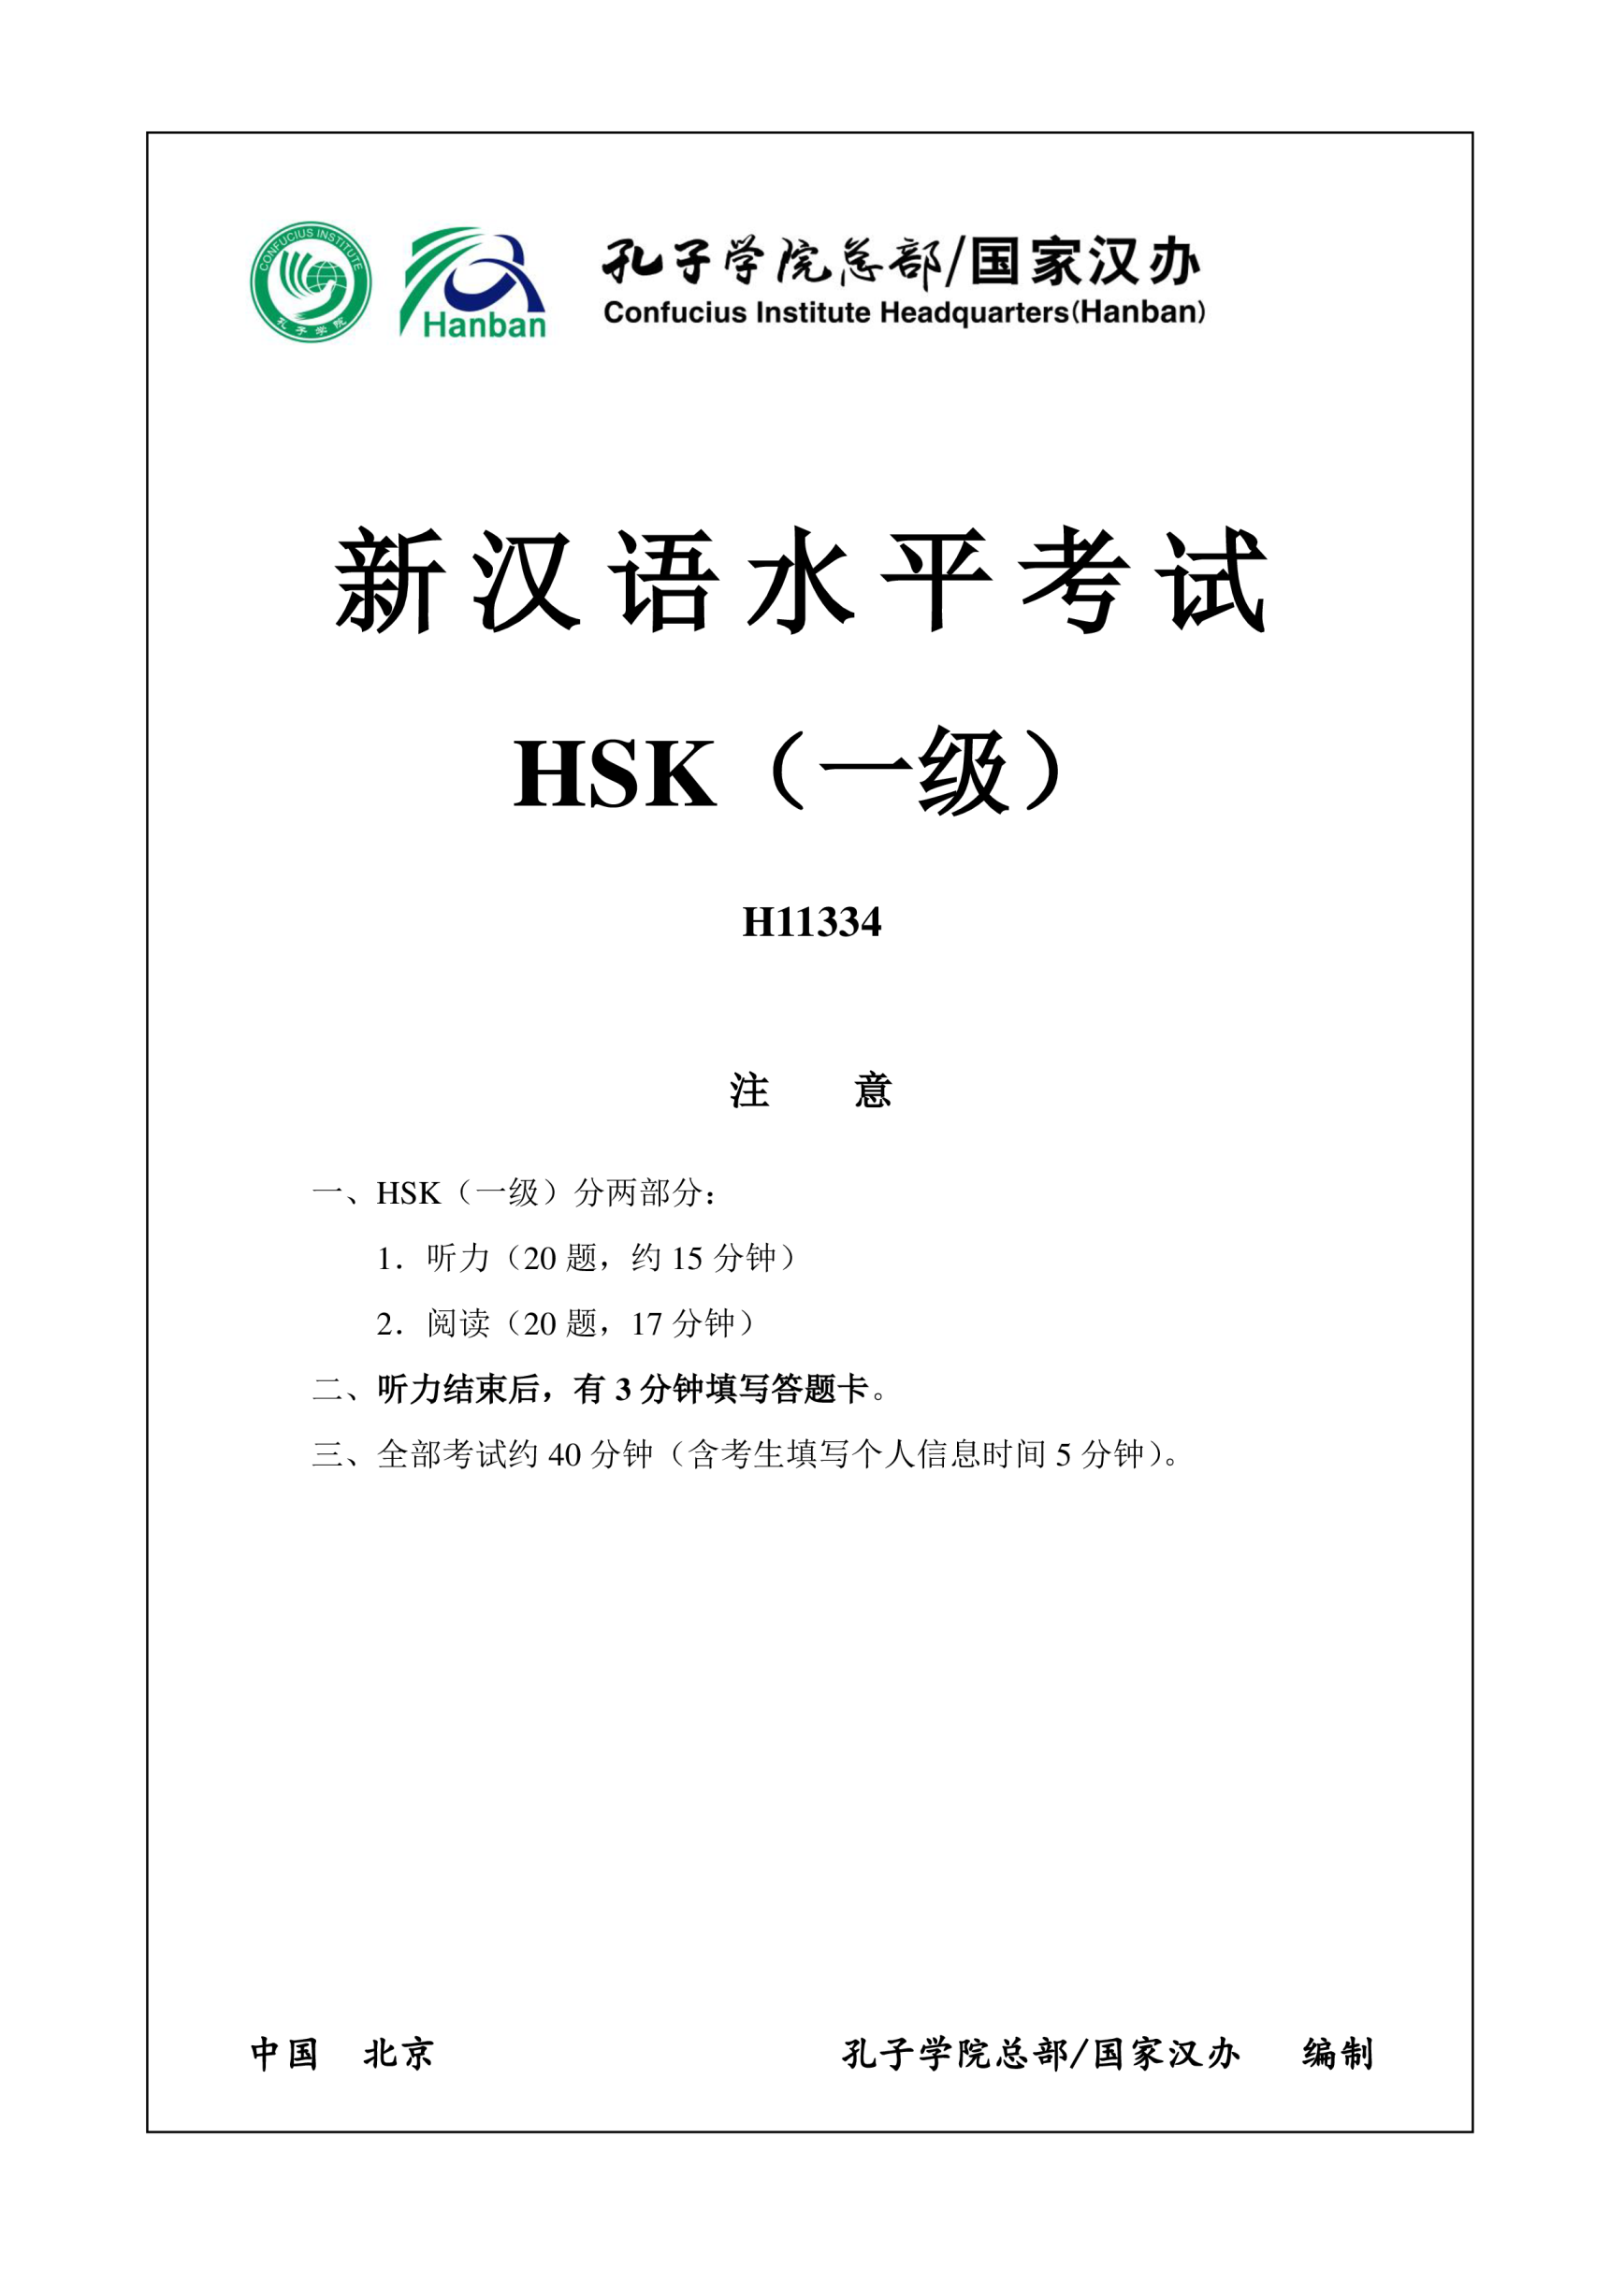 template preview imageHSK1 Chinese Exam including Answers # HSK1 H11334